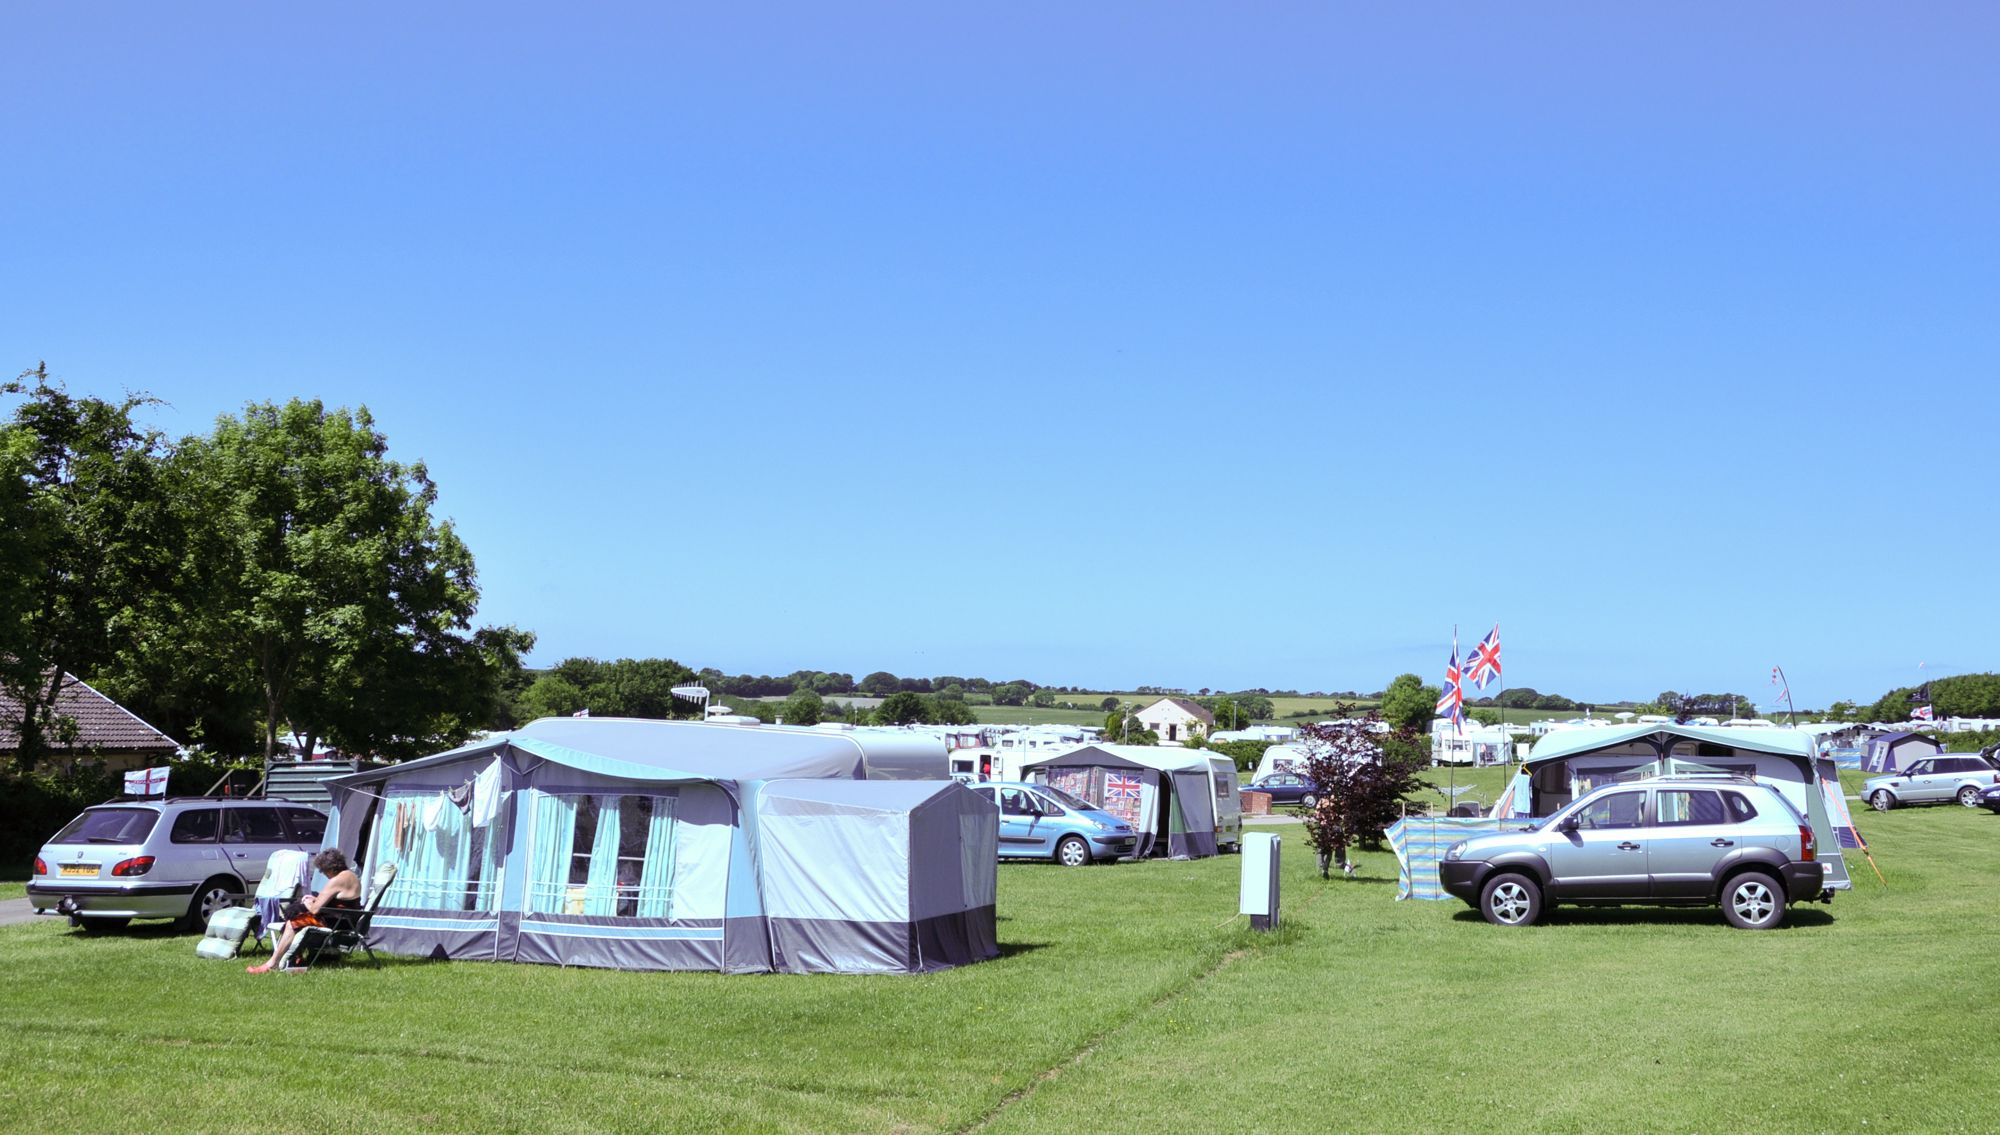 A huge family run campsite with a plethora of well kept facilities and an excellent North Devon locale.